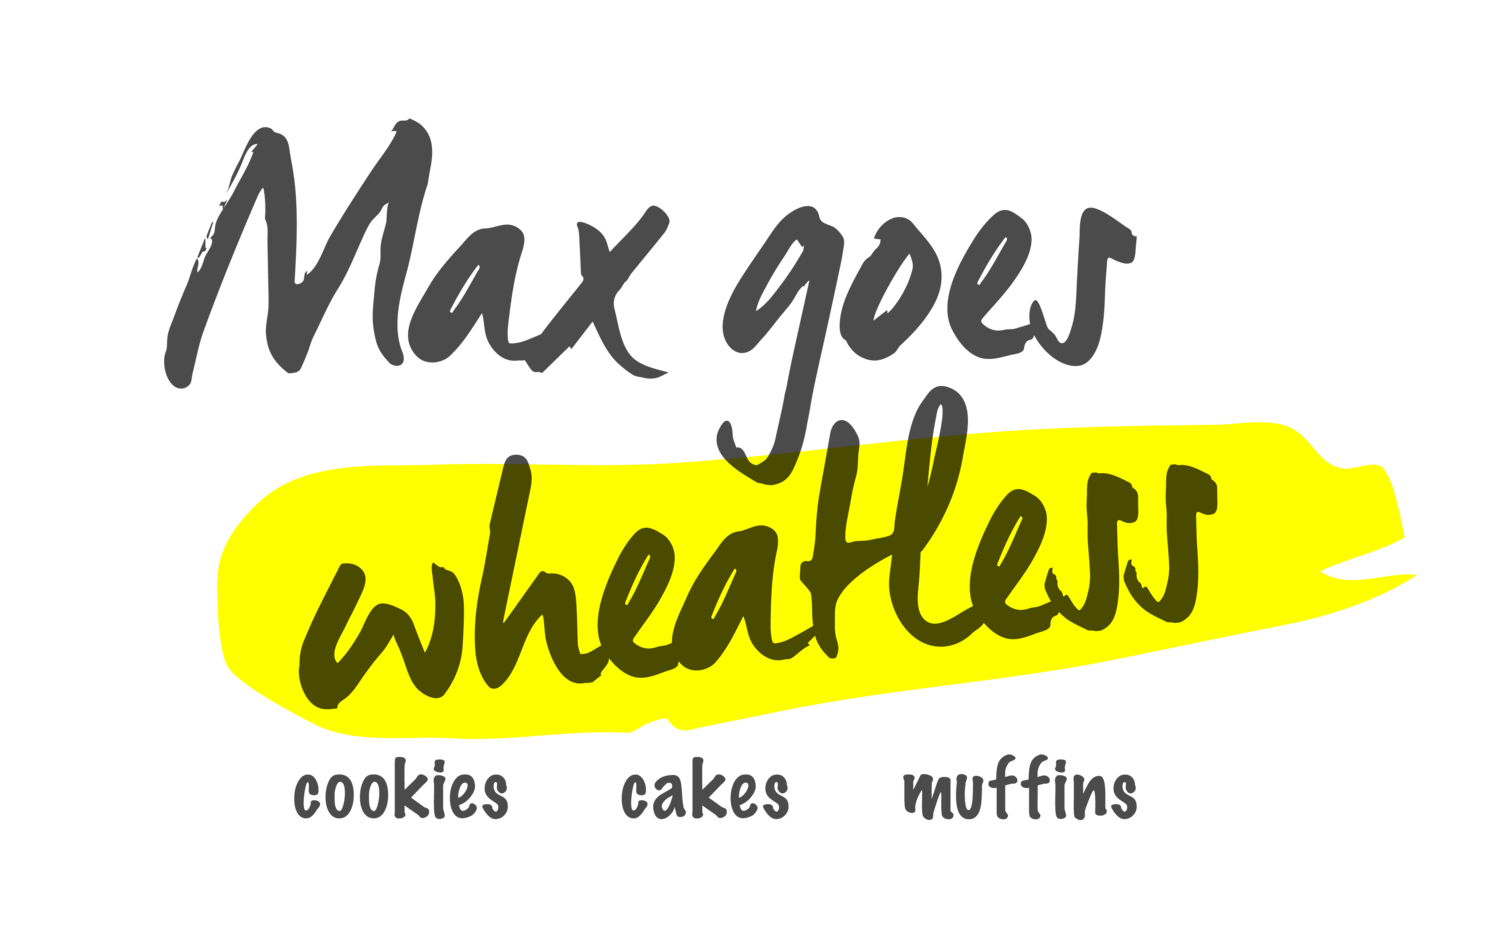 Max Goes Wheatless